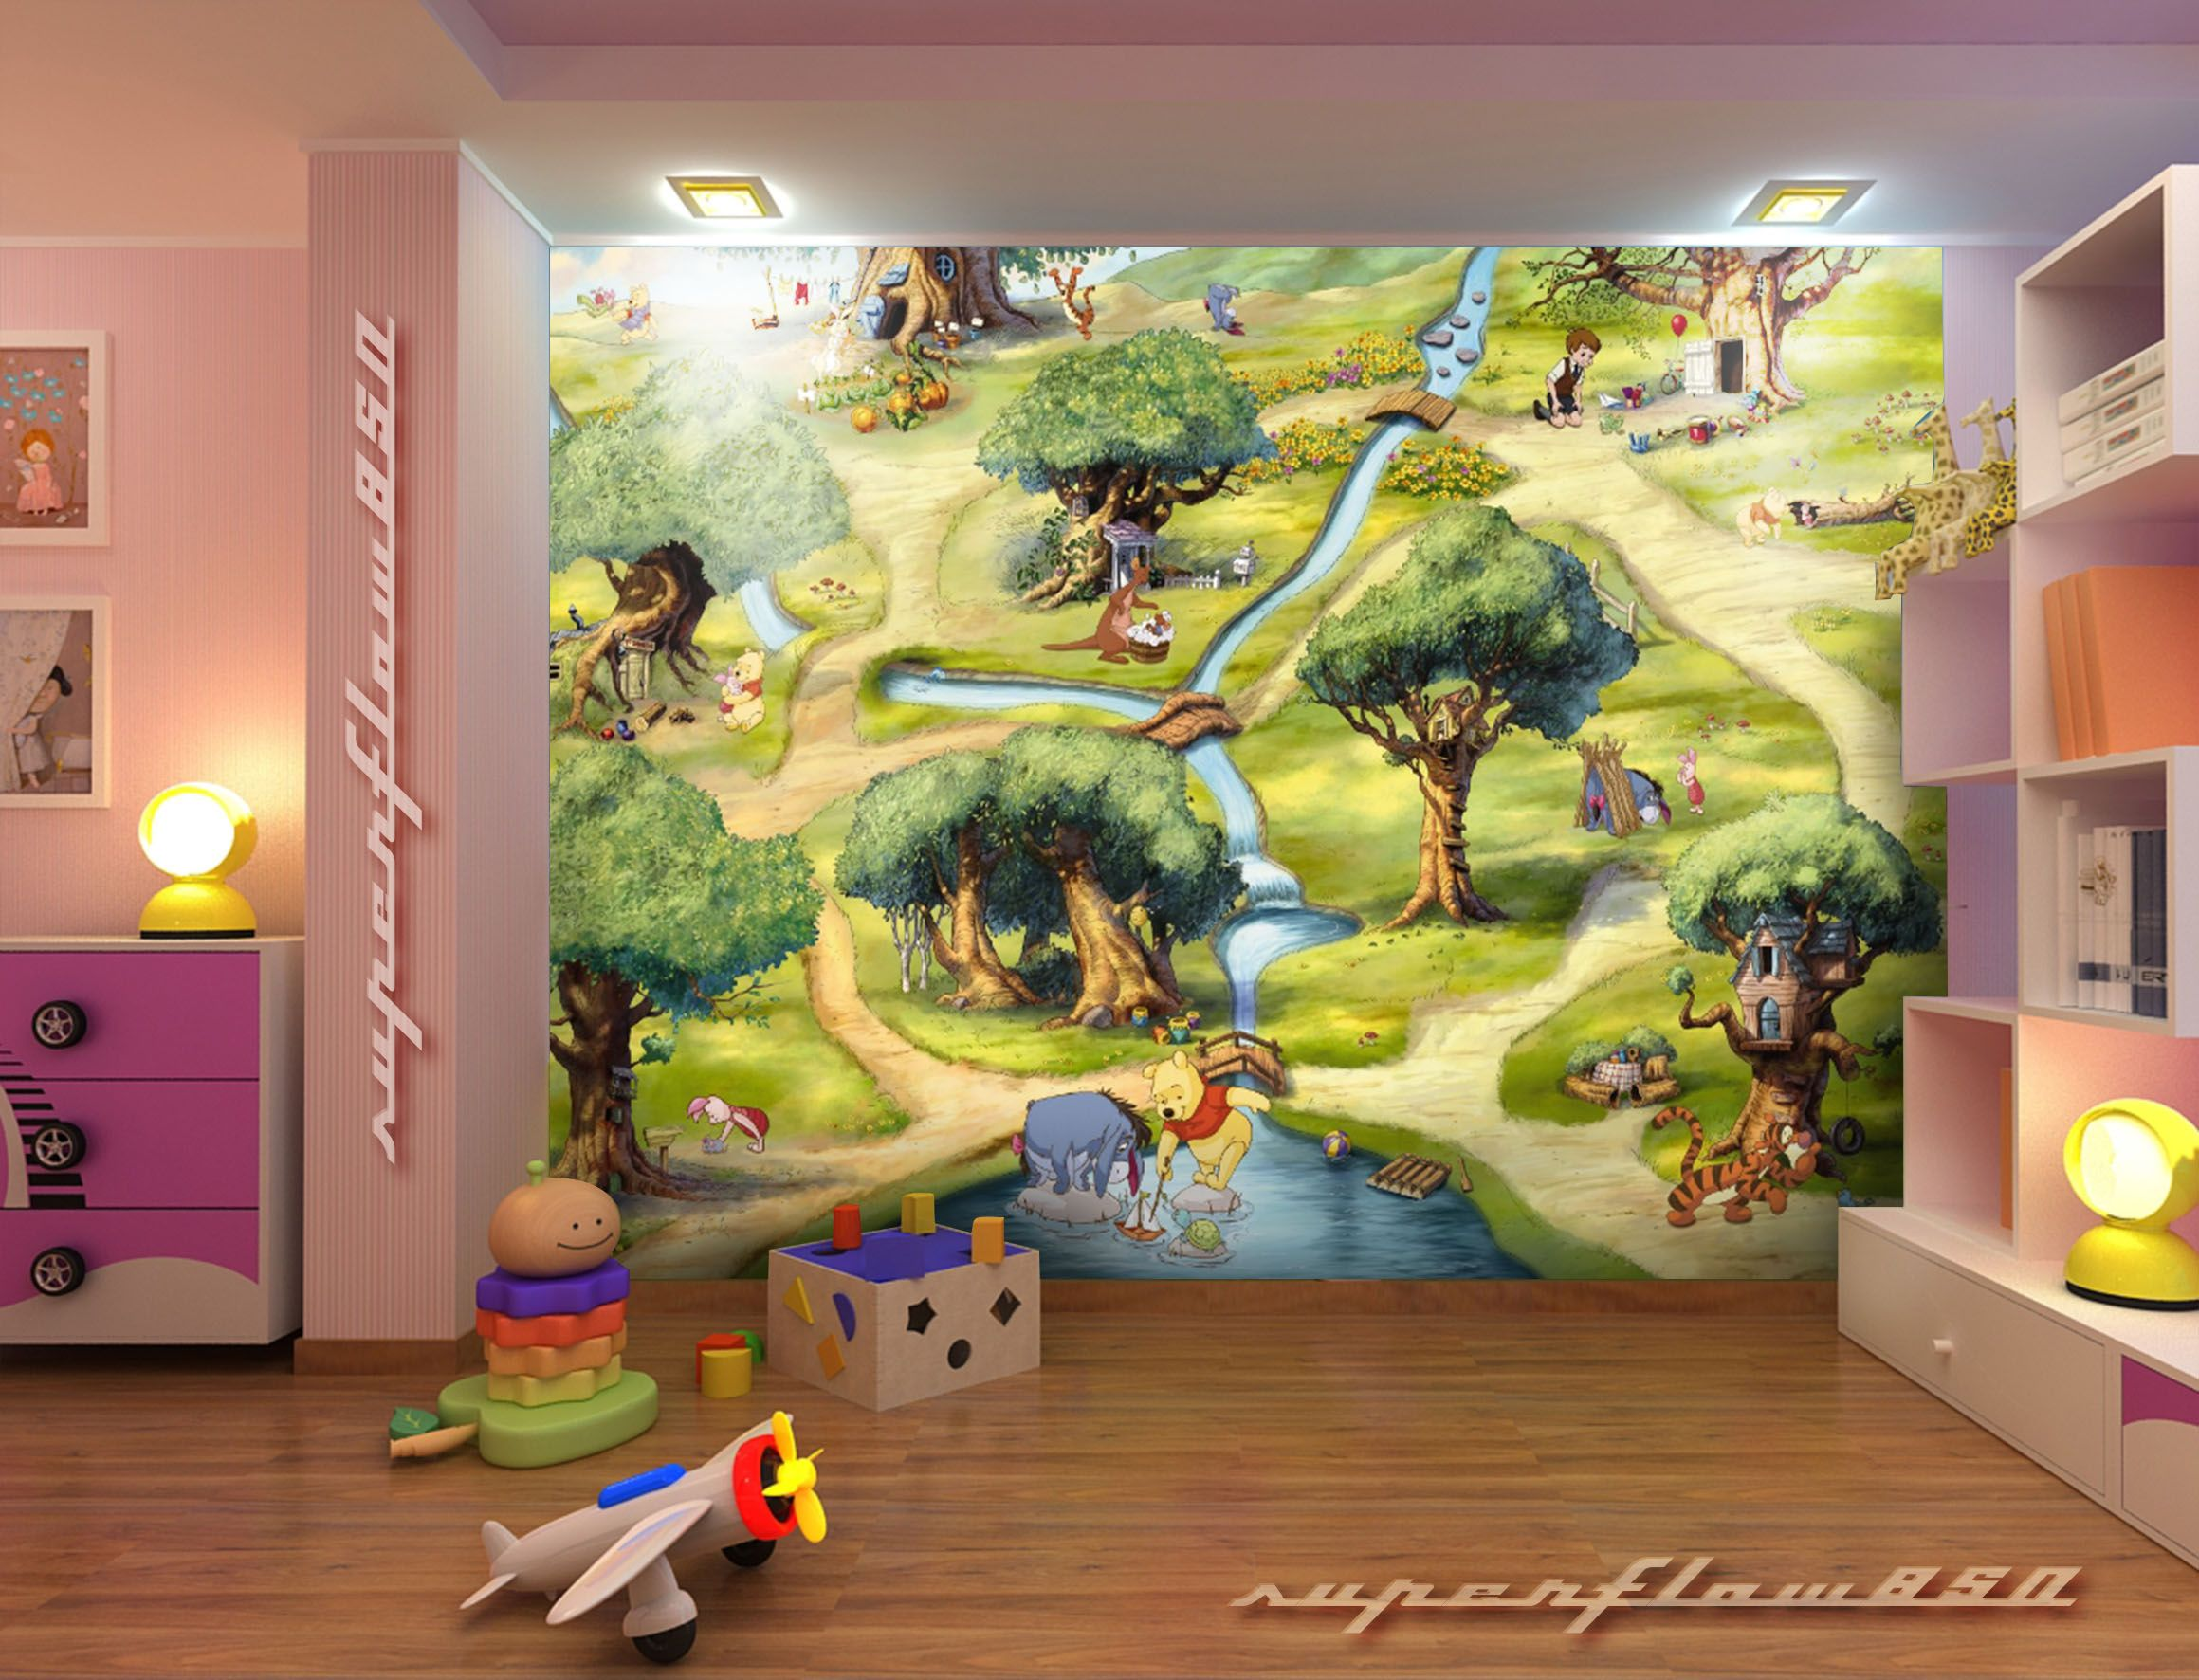 Map of the hundred acre woods winnie the pooh disney wall mural map of the hundred acre woods winnie the pooh disney wall muralds amipublicfo Images